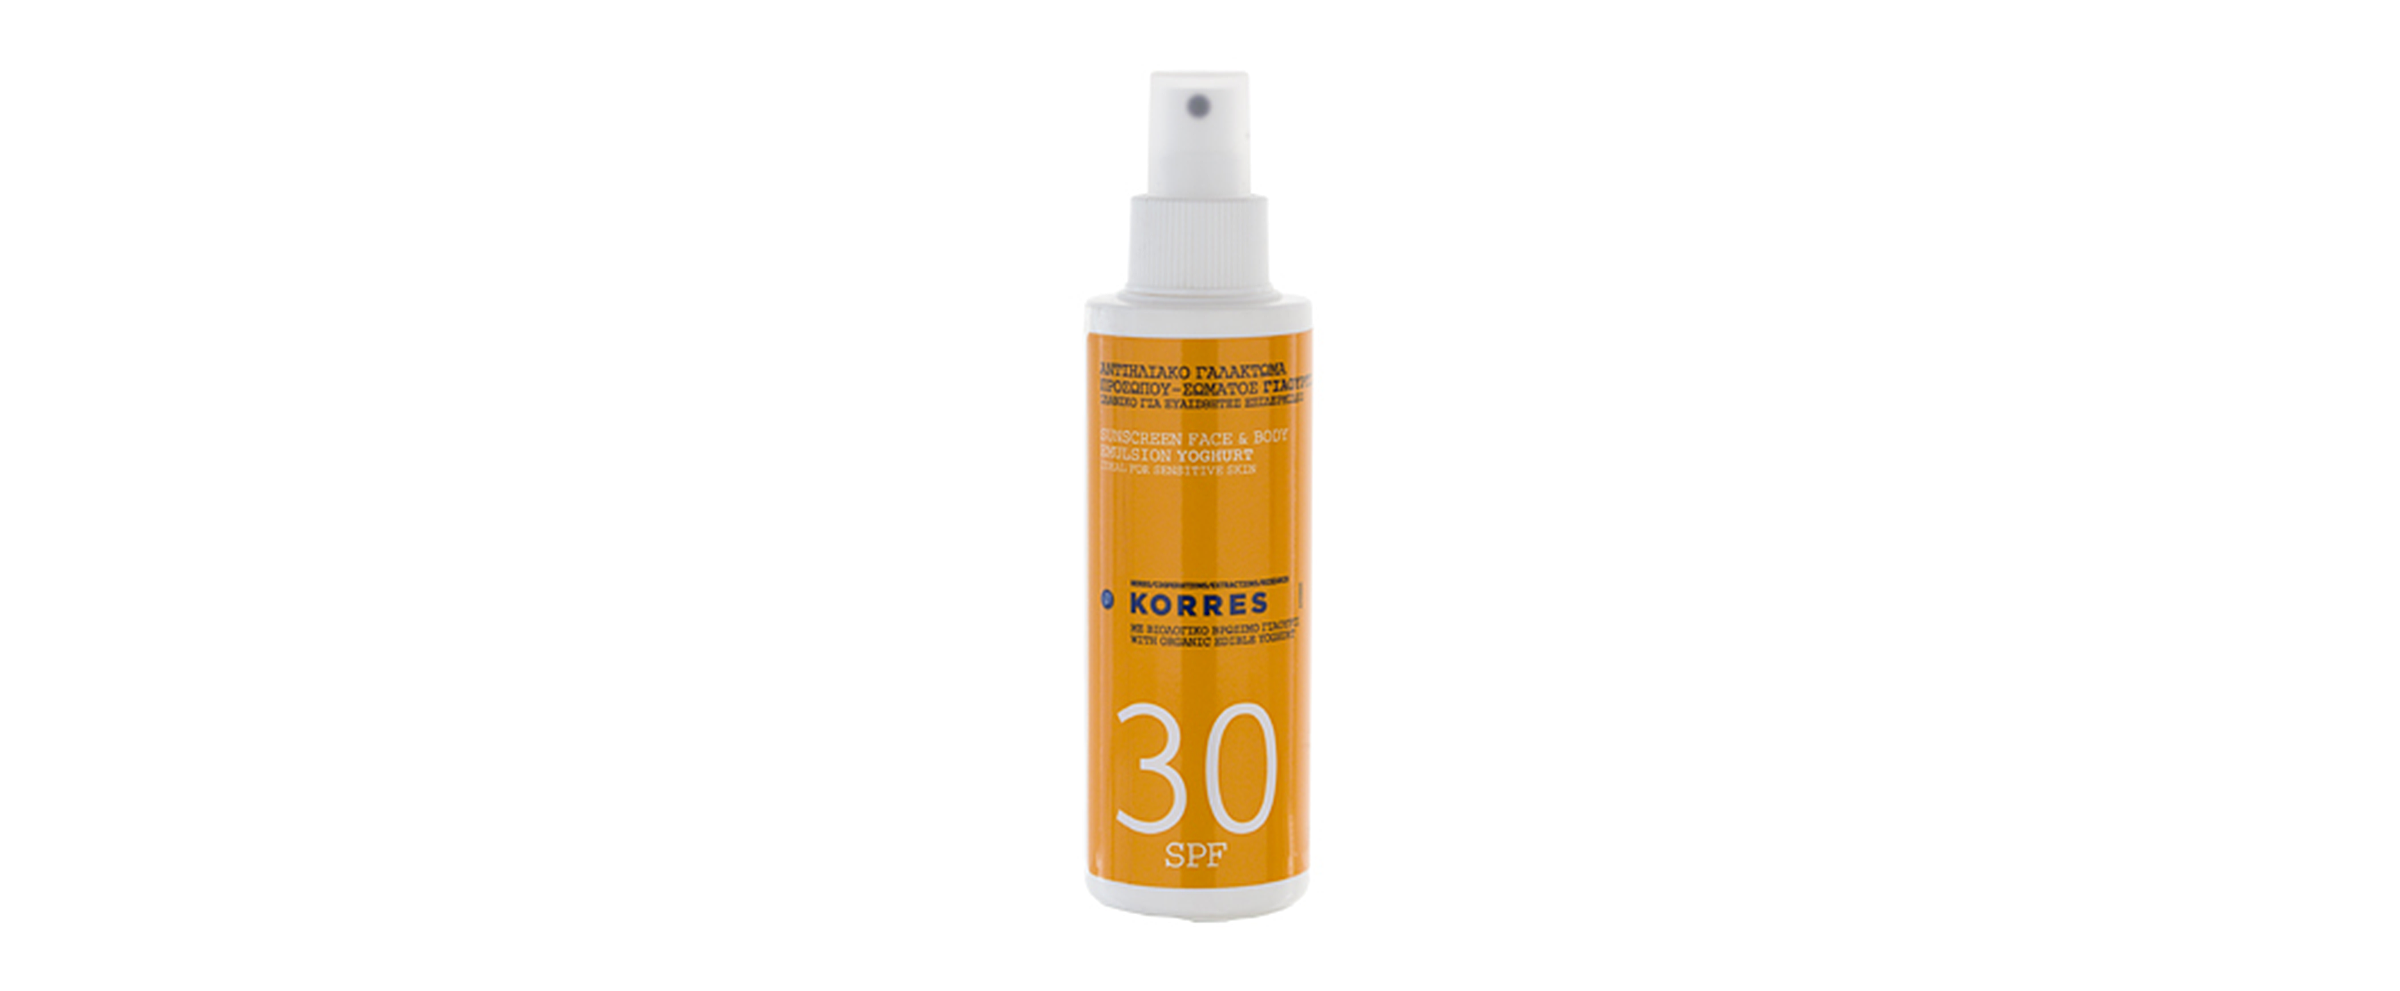 Korres Sunscreen Face & Body